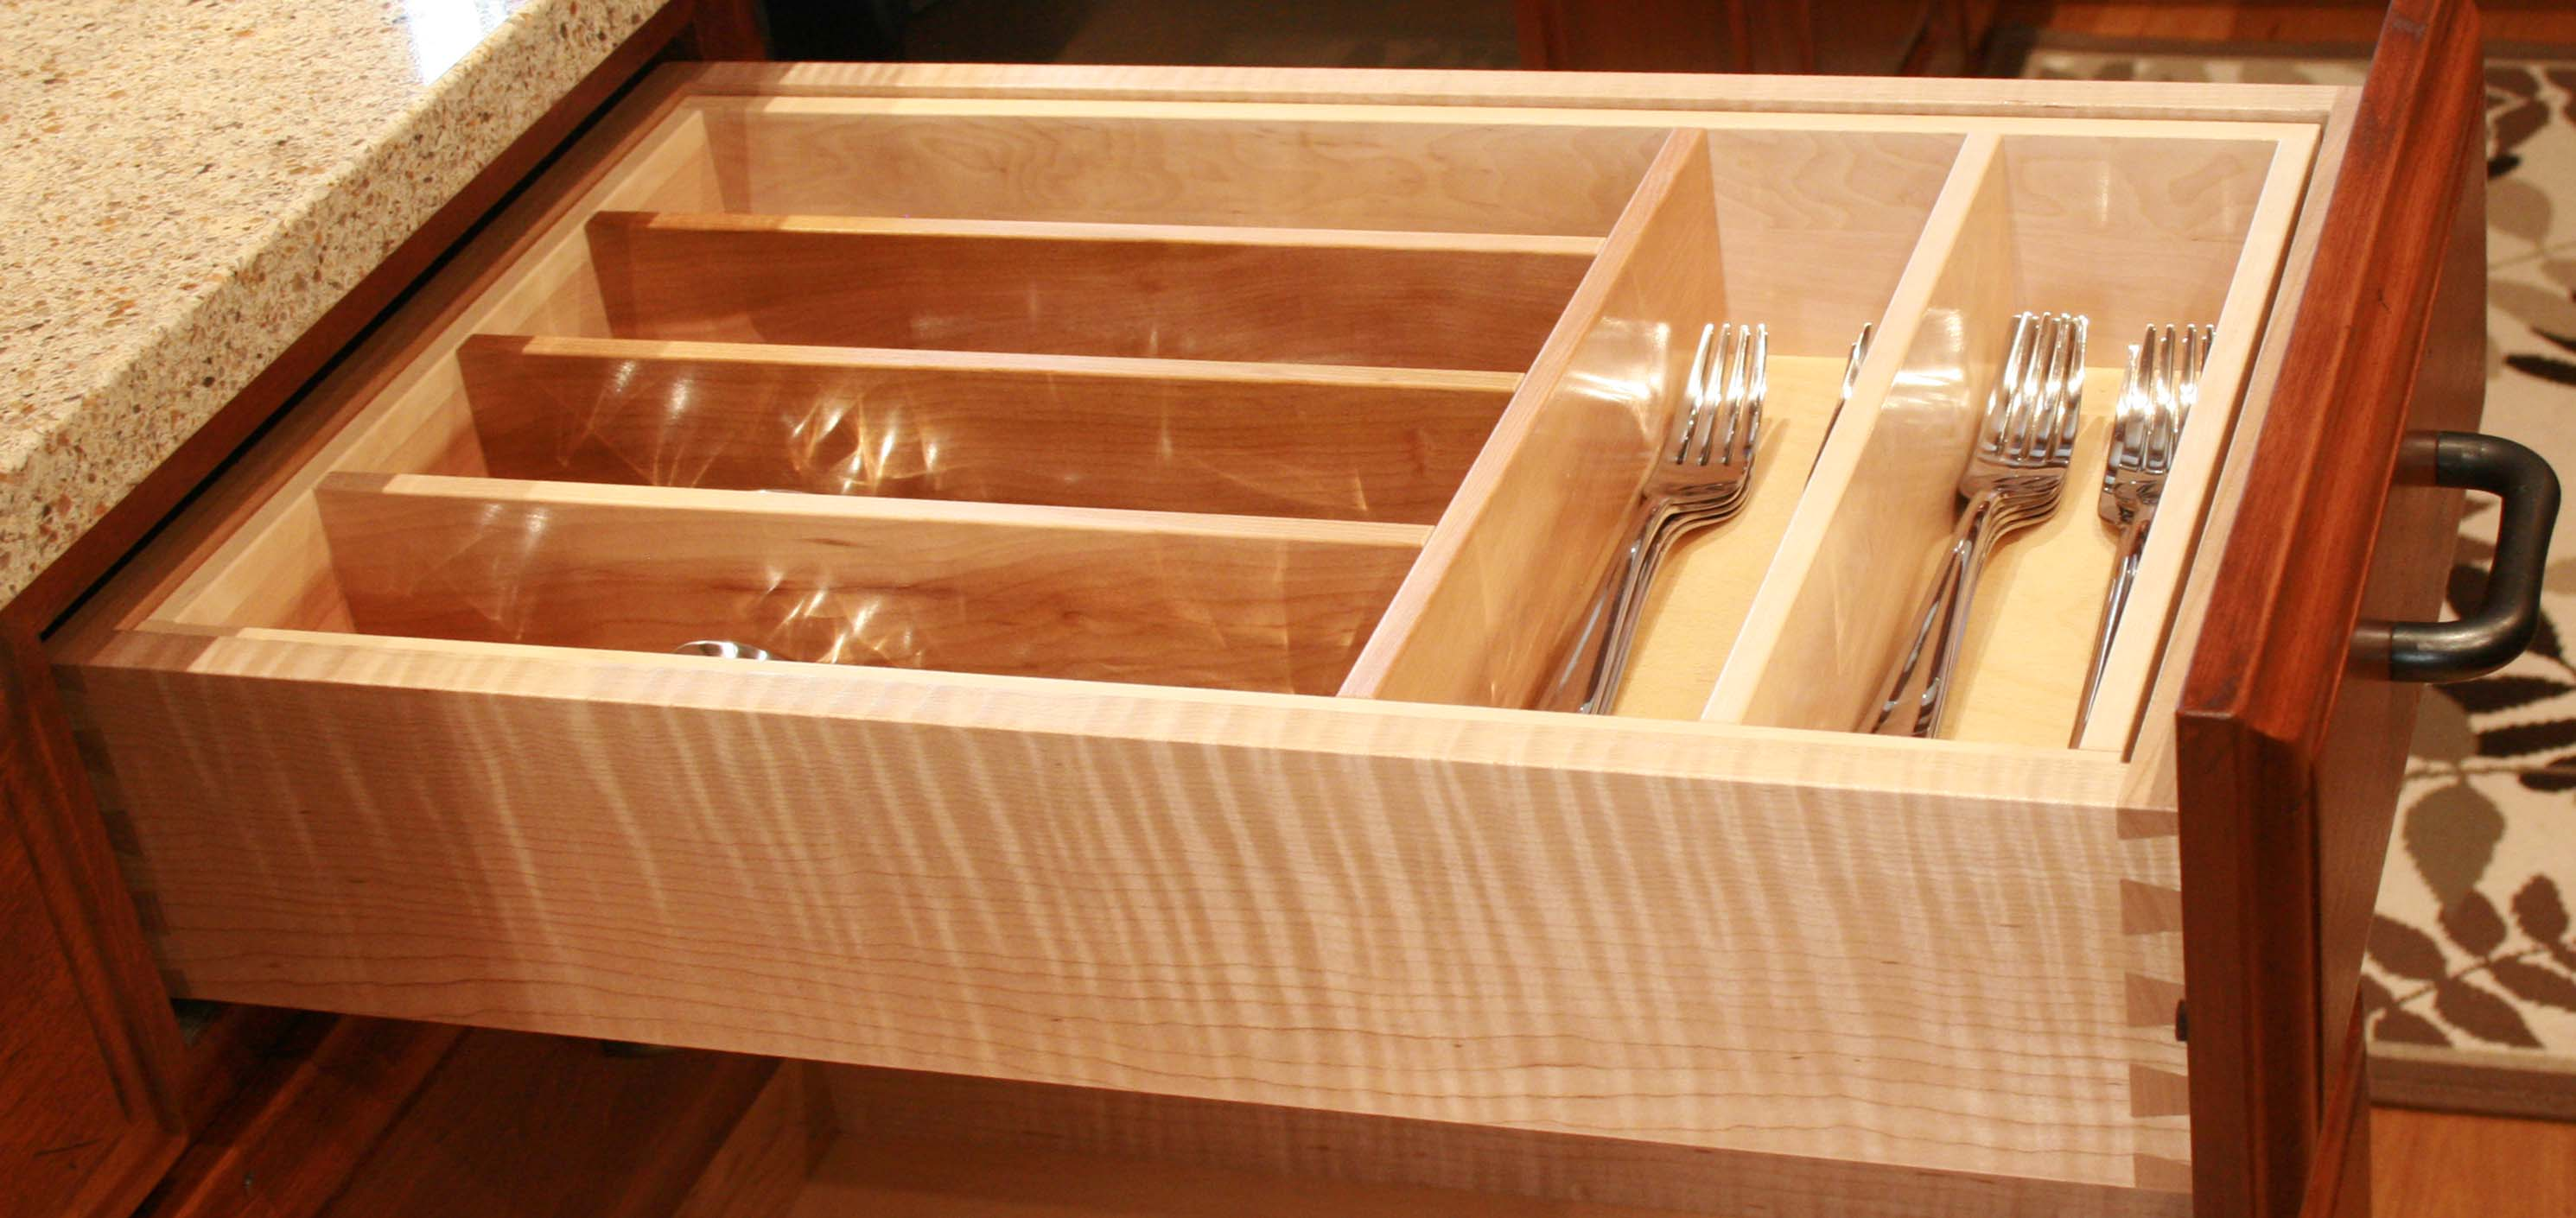 Cutlery Trays & Inserts